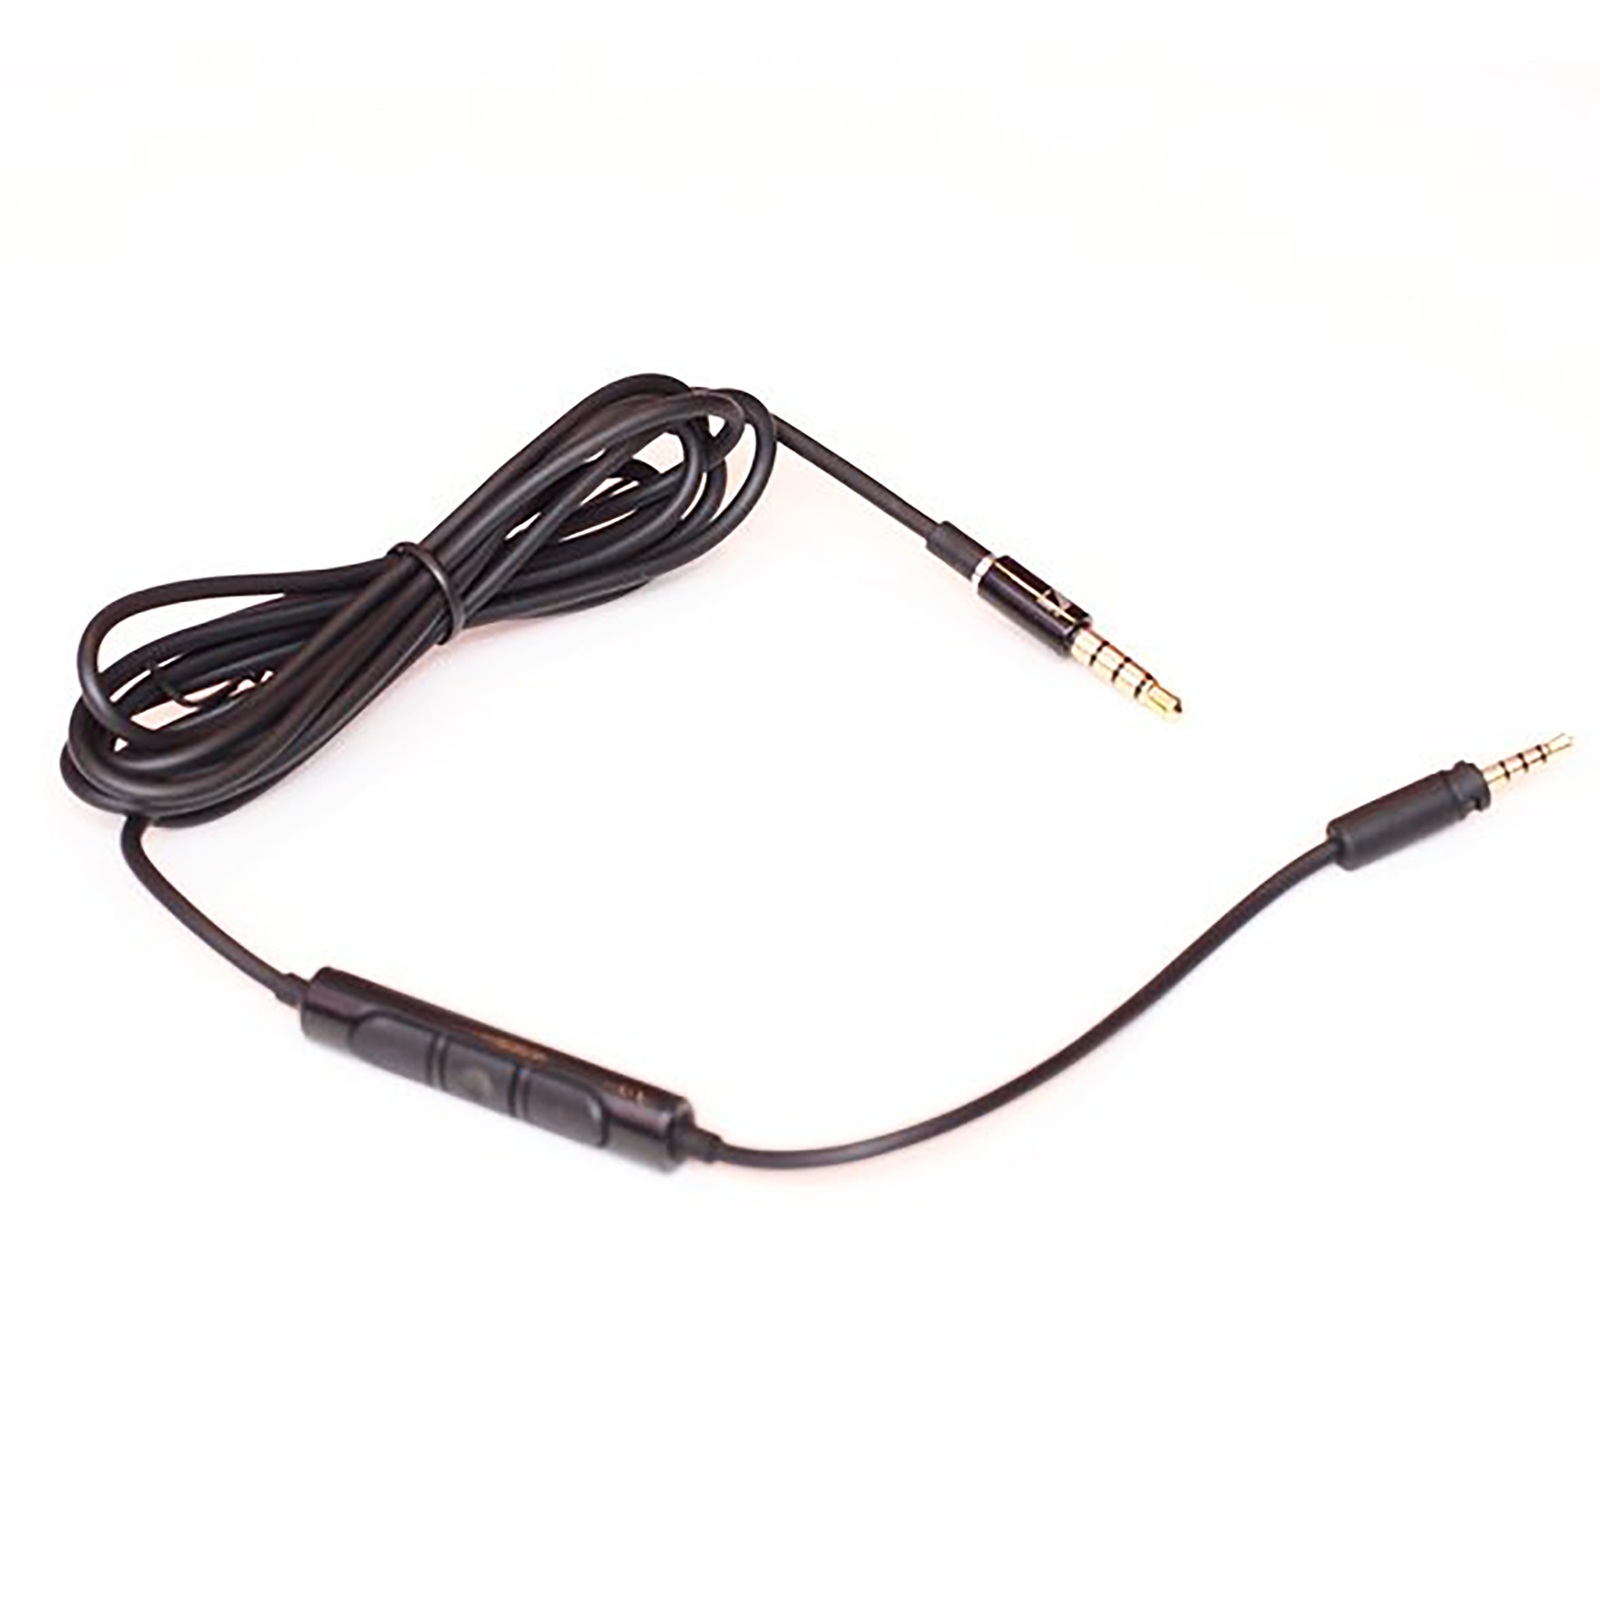 Sennheiser Rca M2 Momentum Connection Cable Apple Remote